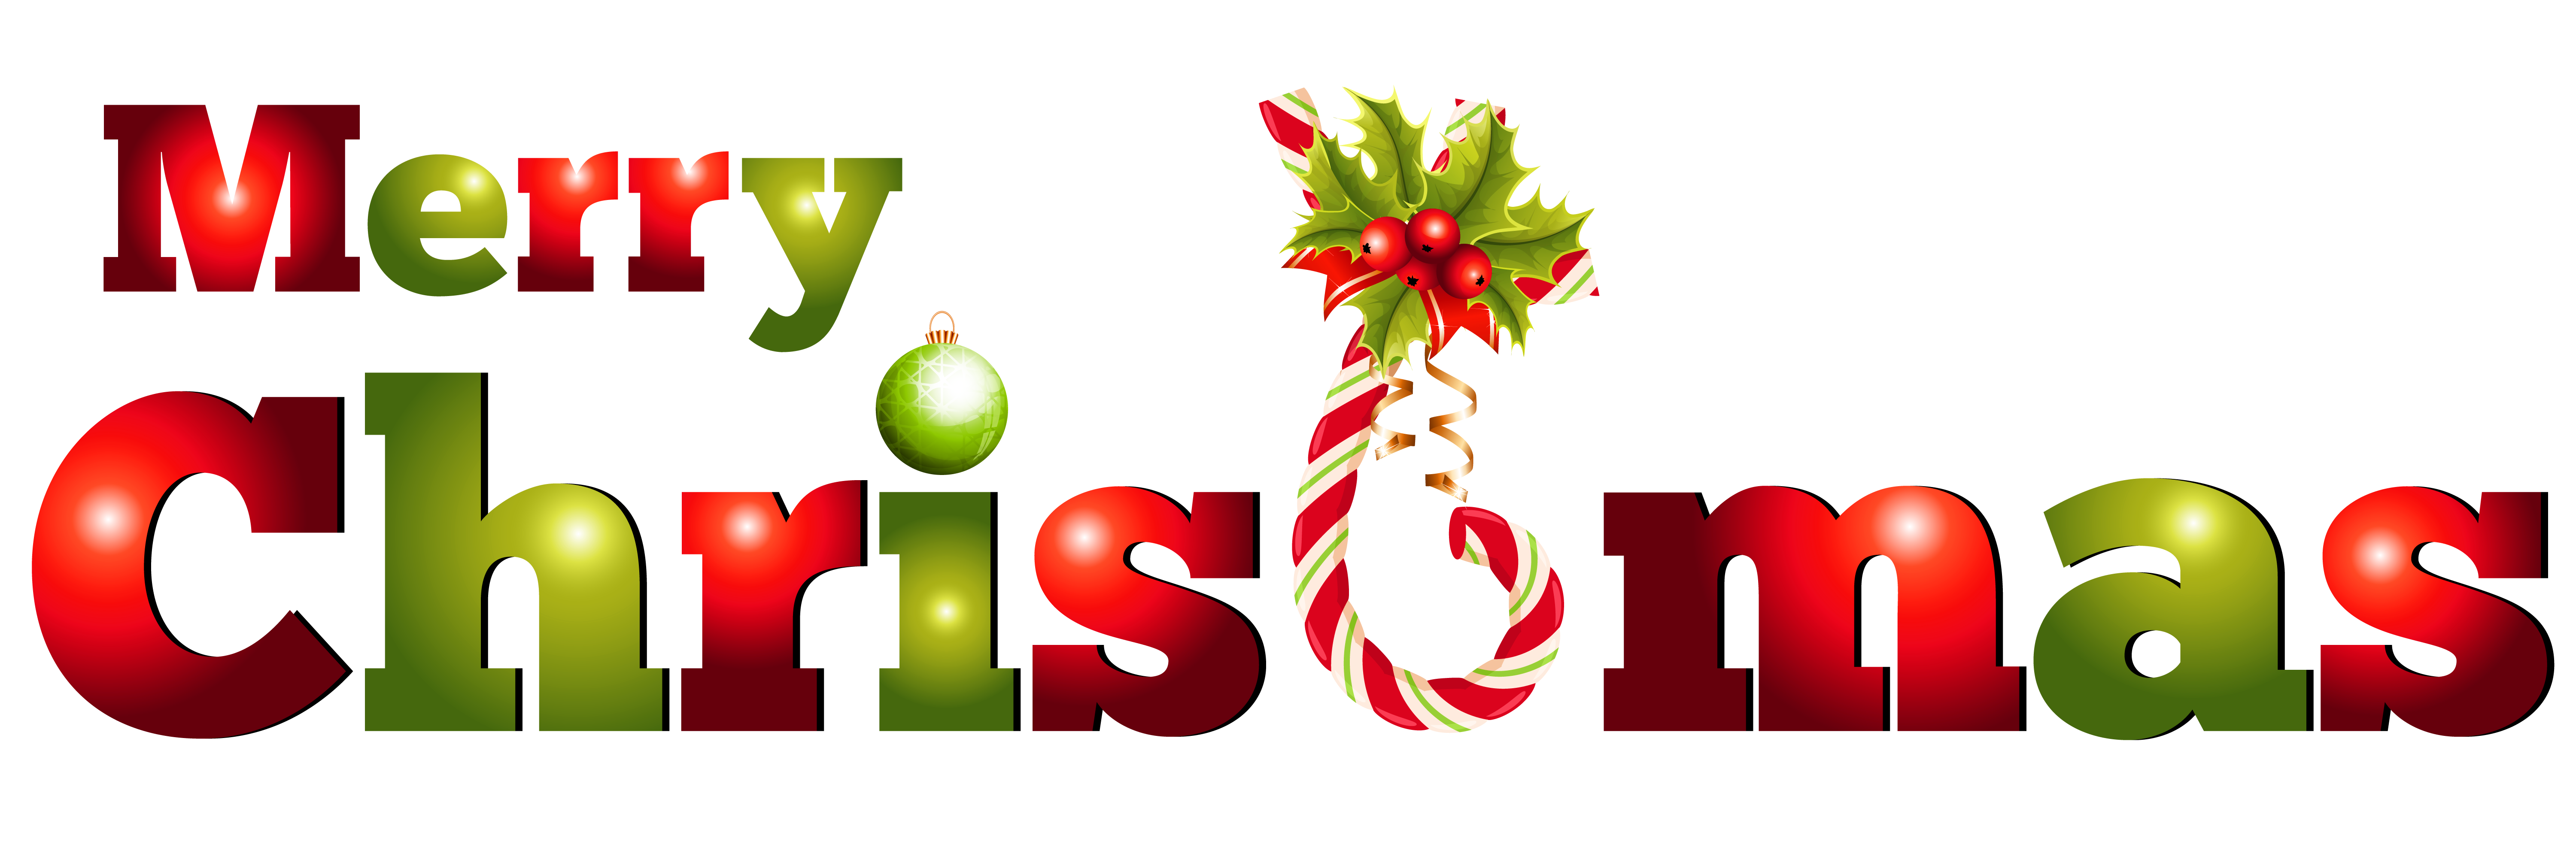 Merry christmas png images. Transparent decor clipart gallery